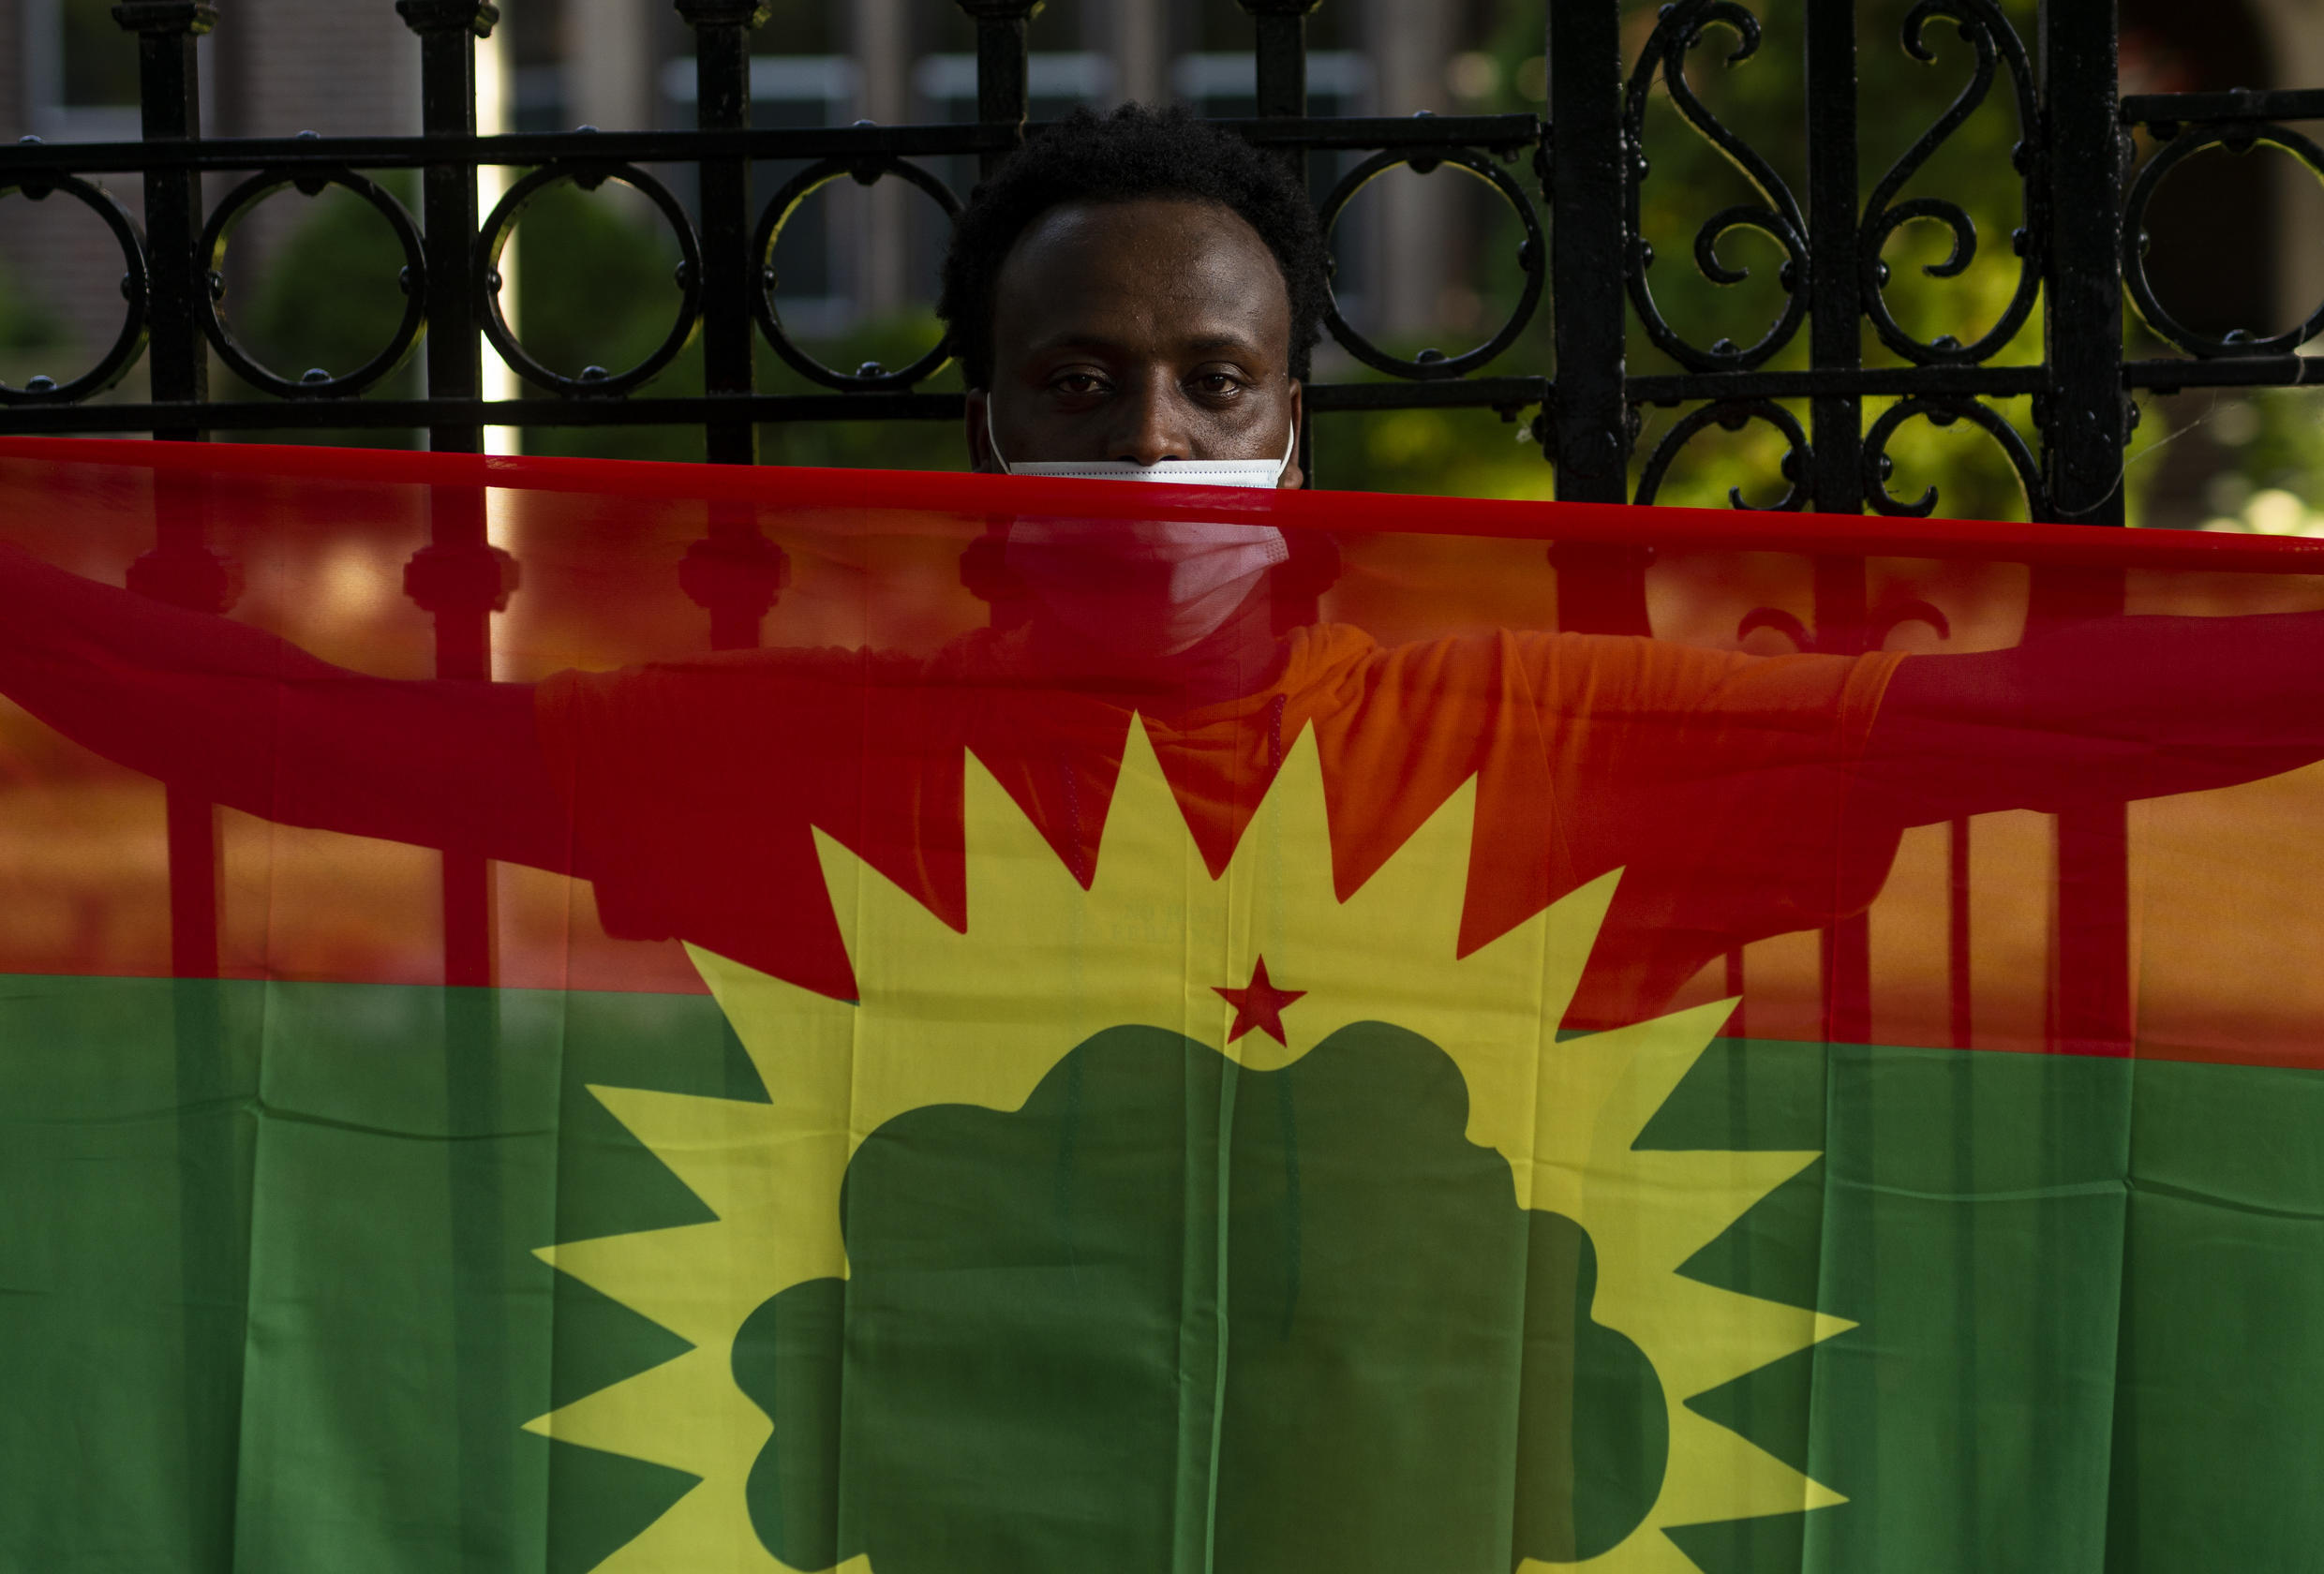 Protester holds up an Oromo flag during a demonstration about the killing of musician and activist Haacaaluu Hundeessaa, in St Paul, Minnesota on 30 June 2020.